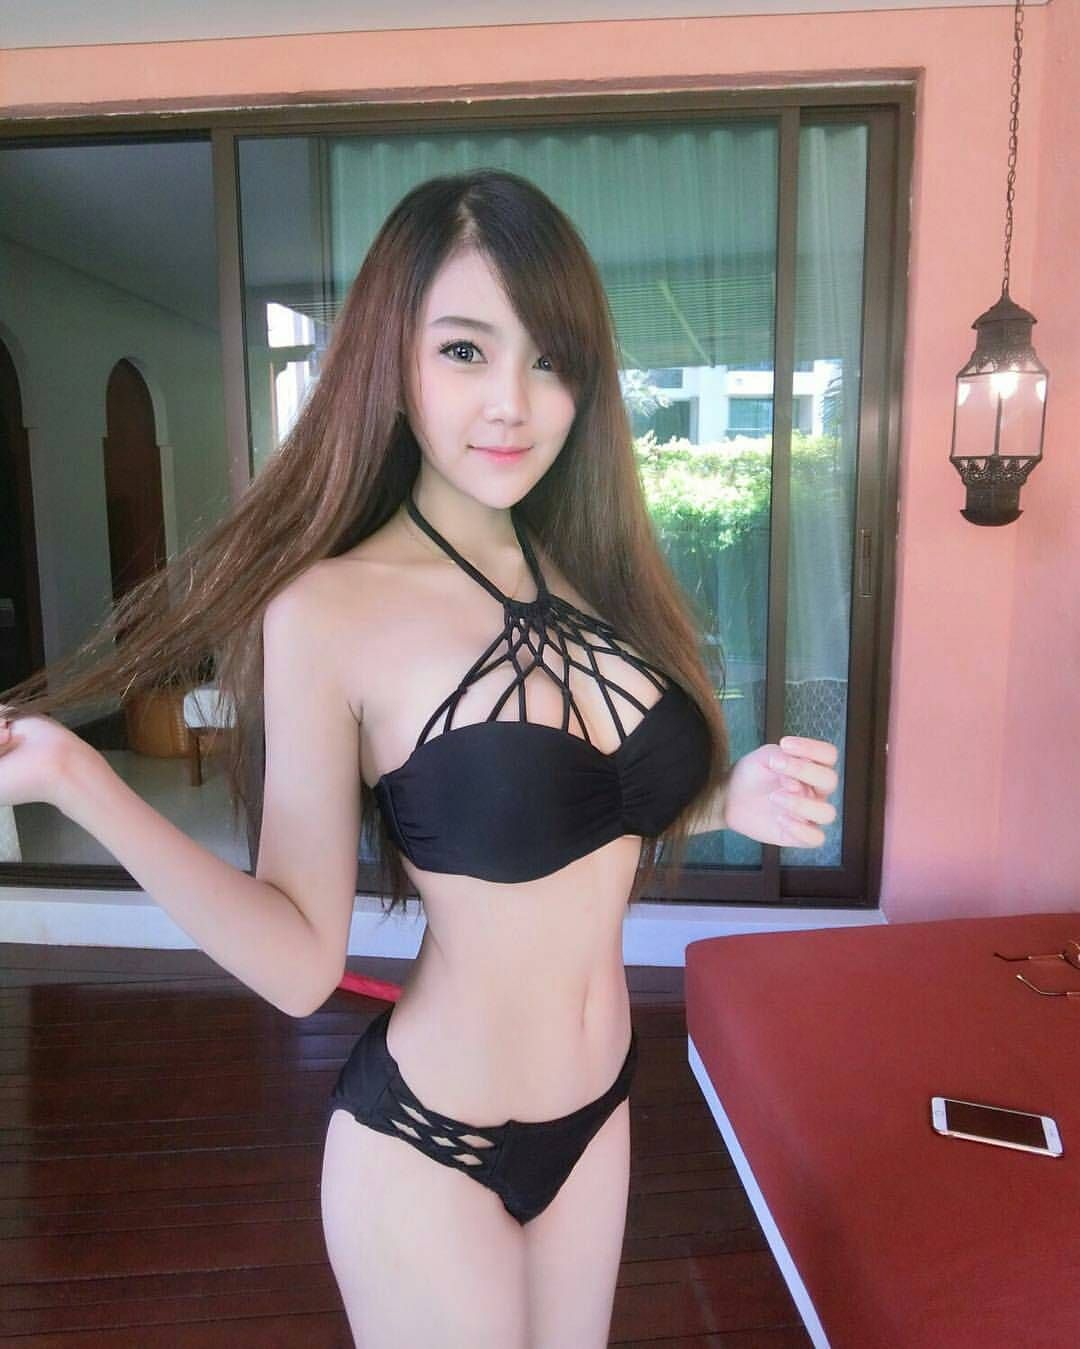 Idol bikini girl photos — photo 9